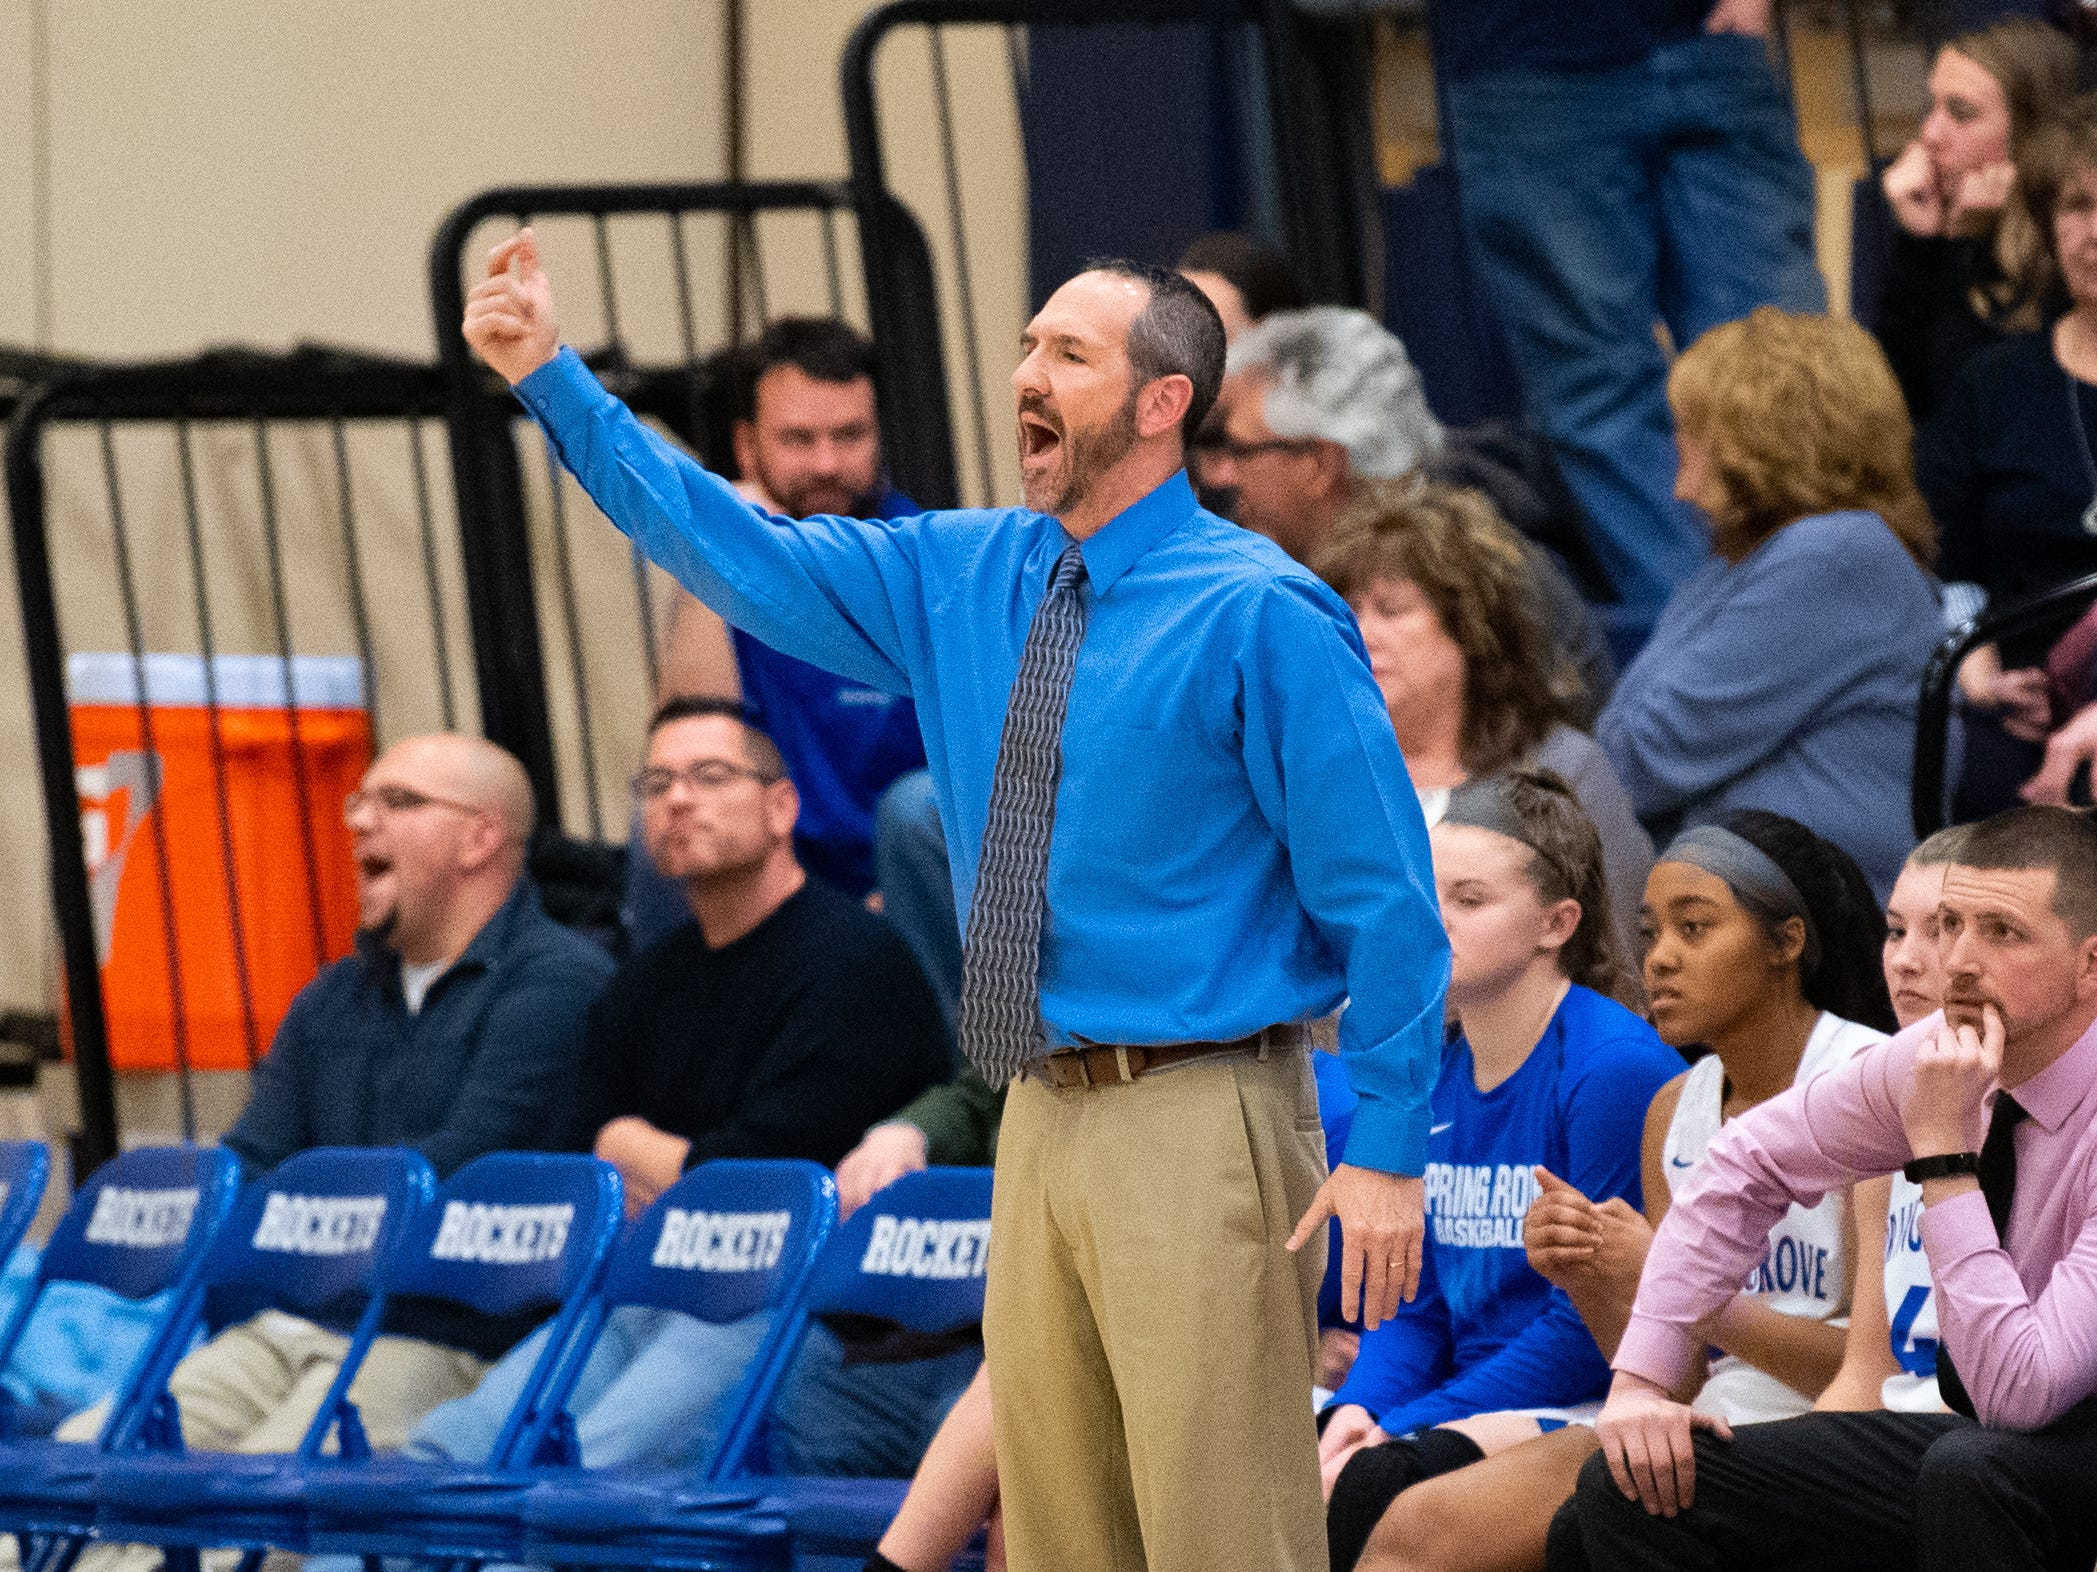 Spring Grove coach Troy Sowers instructs his team from the sidelines during the girls' basketball game between Spring Grove and South Western, Friday, January 11, 2019. The Rockets defeated the Mustangs 51 to 38.